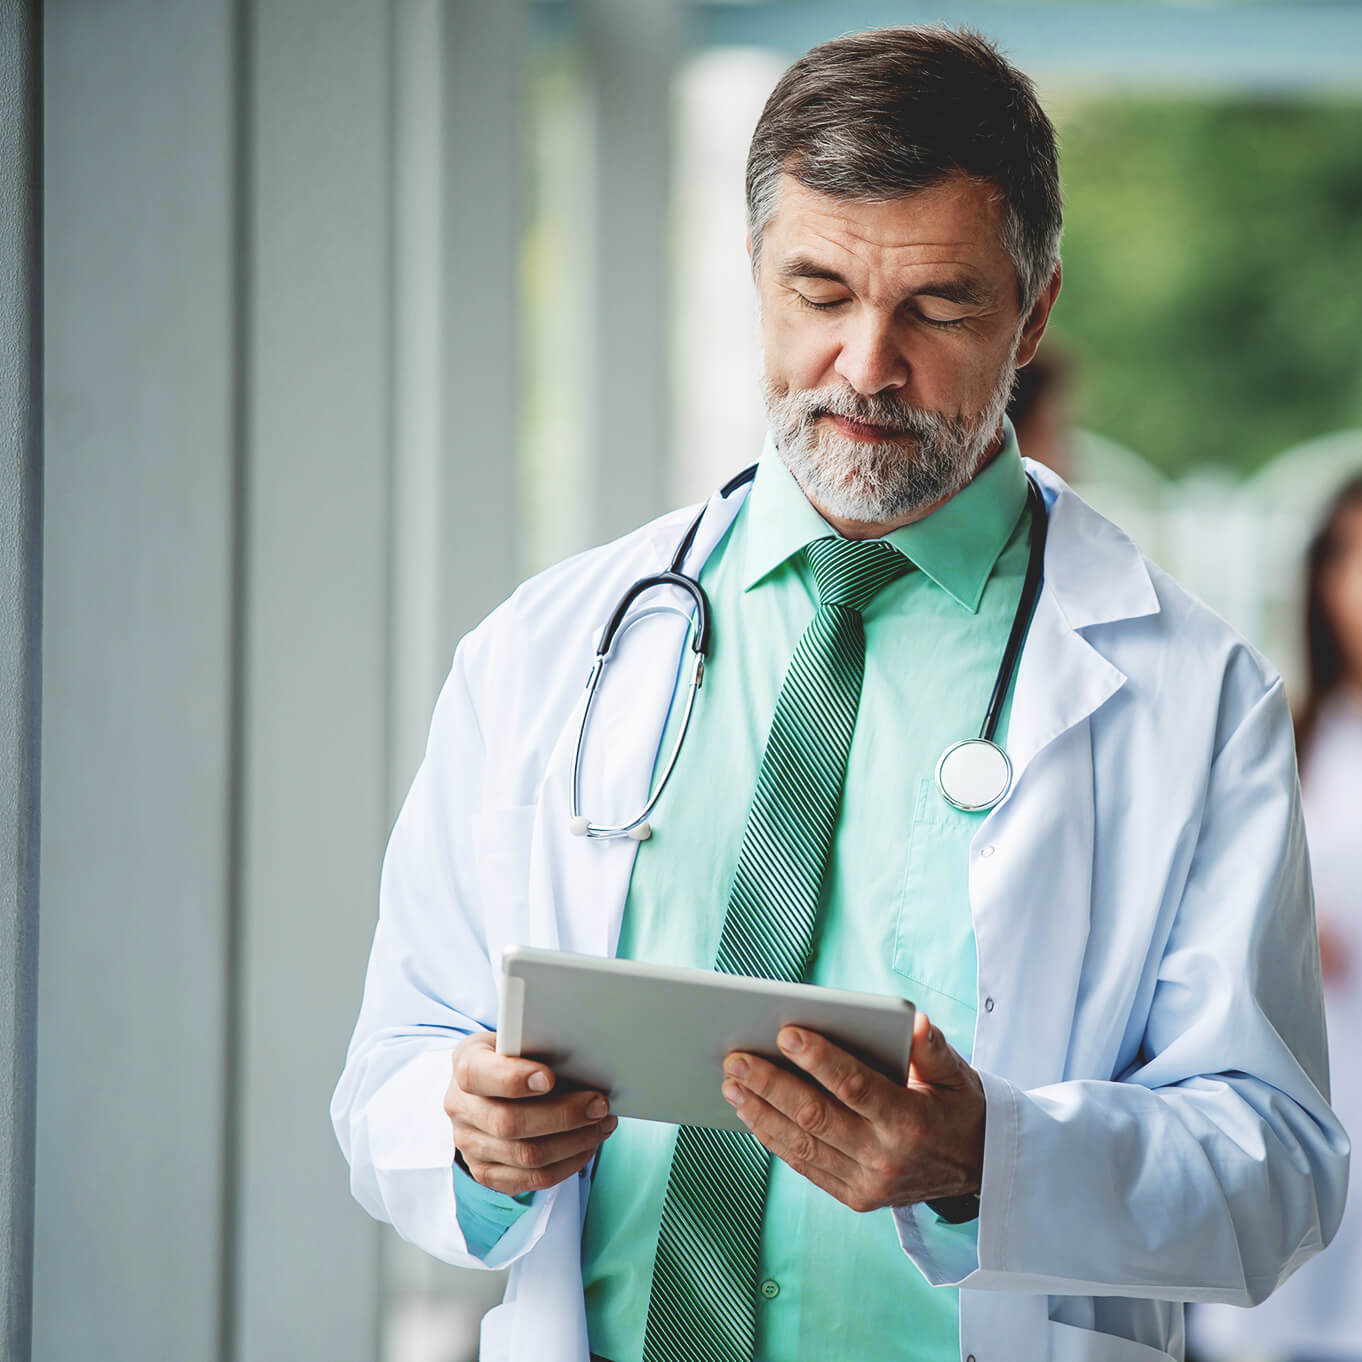 Mature doctor in a light green shirt and white lab coat, with a stethoscope hanging around his neck. He looks intently at a digital tablet.